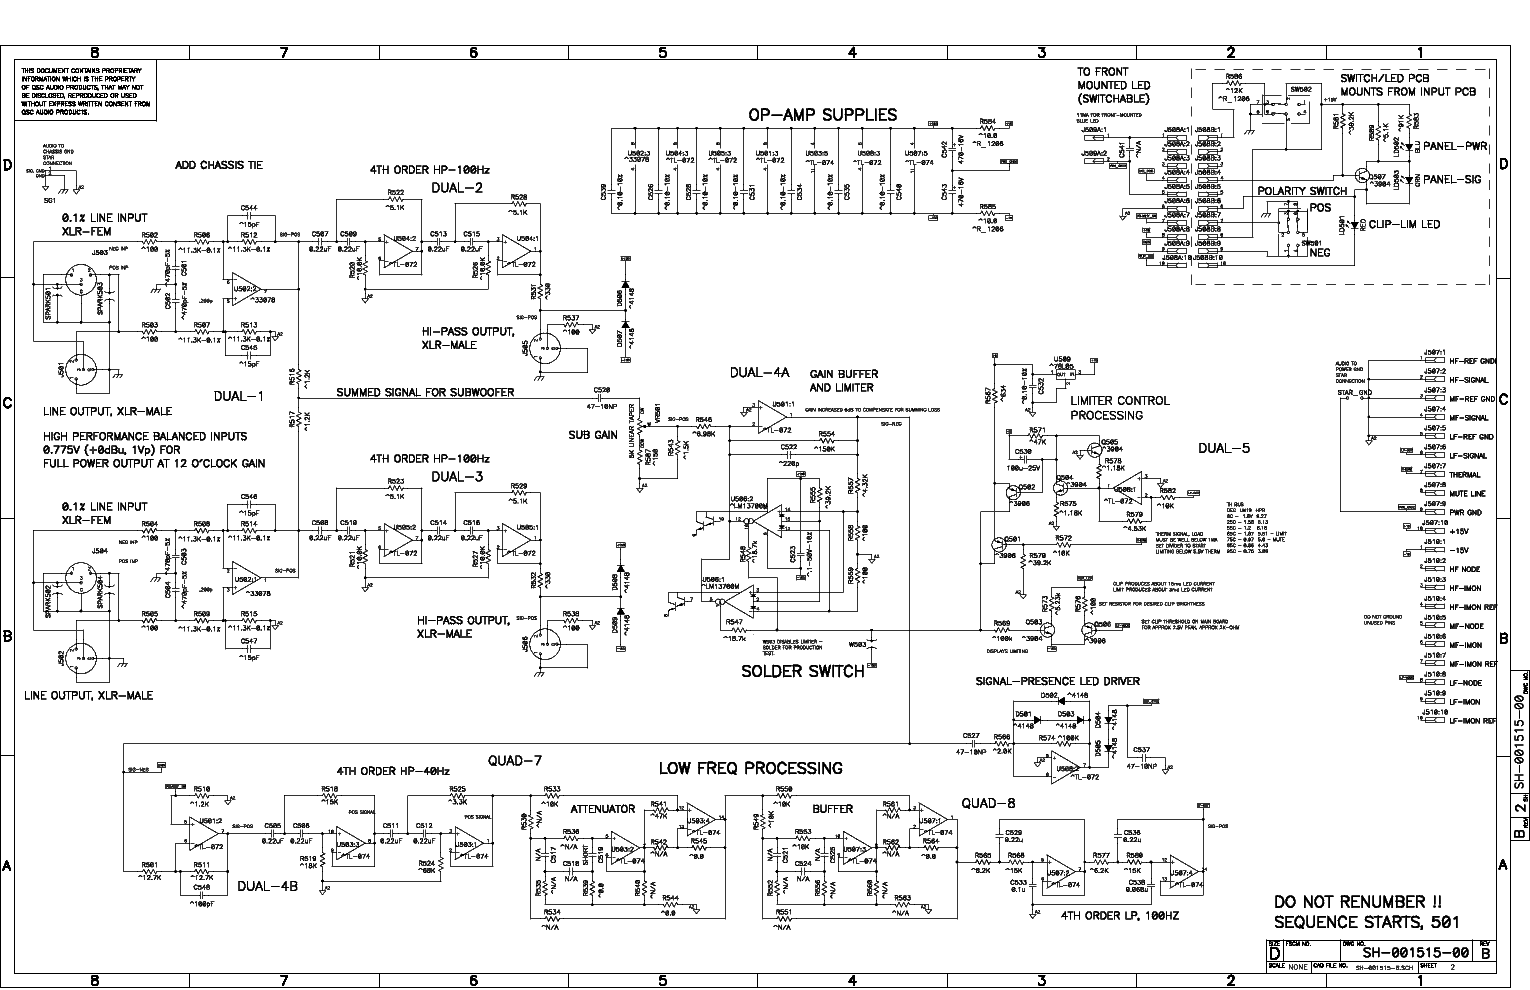 qsc_hpr151w.pdf_1 Qsc Plx Schematic Diagram on isa 300ti, pl340 power supply, gx 3 amplifier, k-12 ksub, 1400 power amp, k10 speaker, usa 900 amplifier,